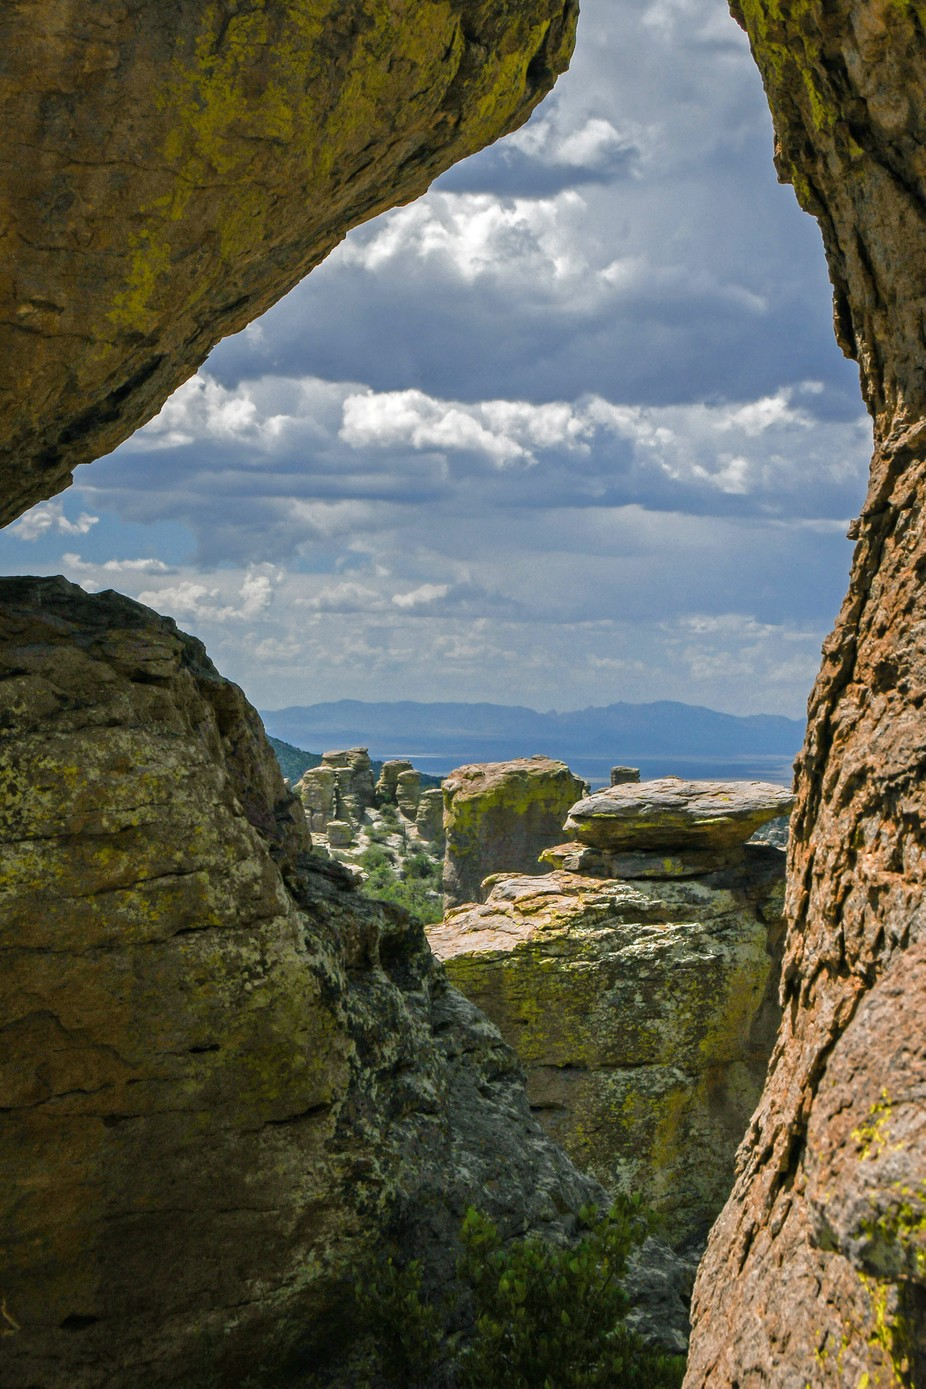 Looking through boulders at the beautiful view of Chiricahua National Monument at Massai Point.